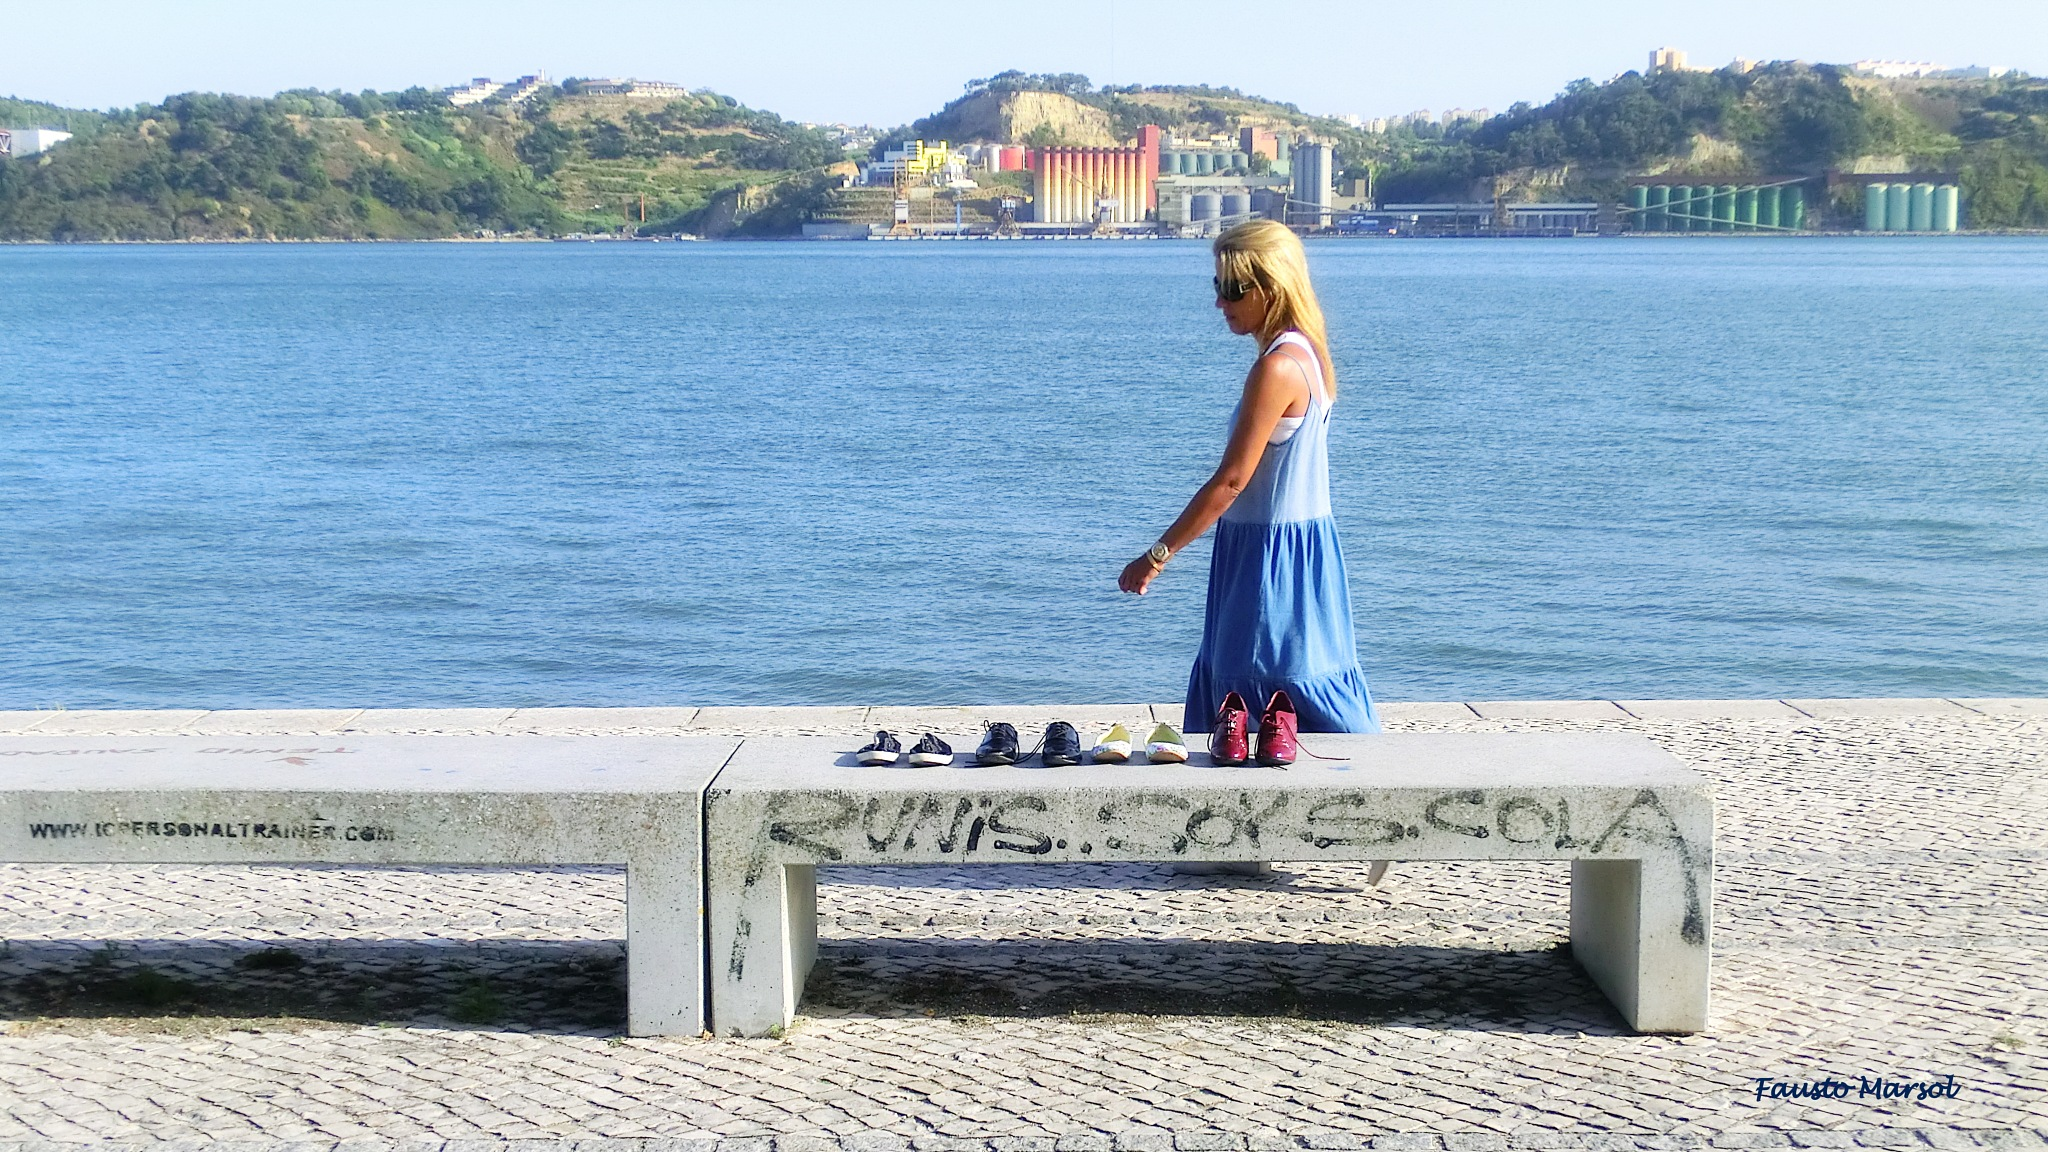 The river, the shoes & the lady (6/6) by Fausto Marsol